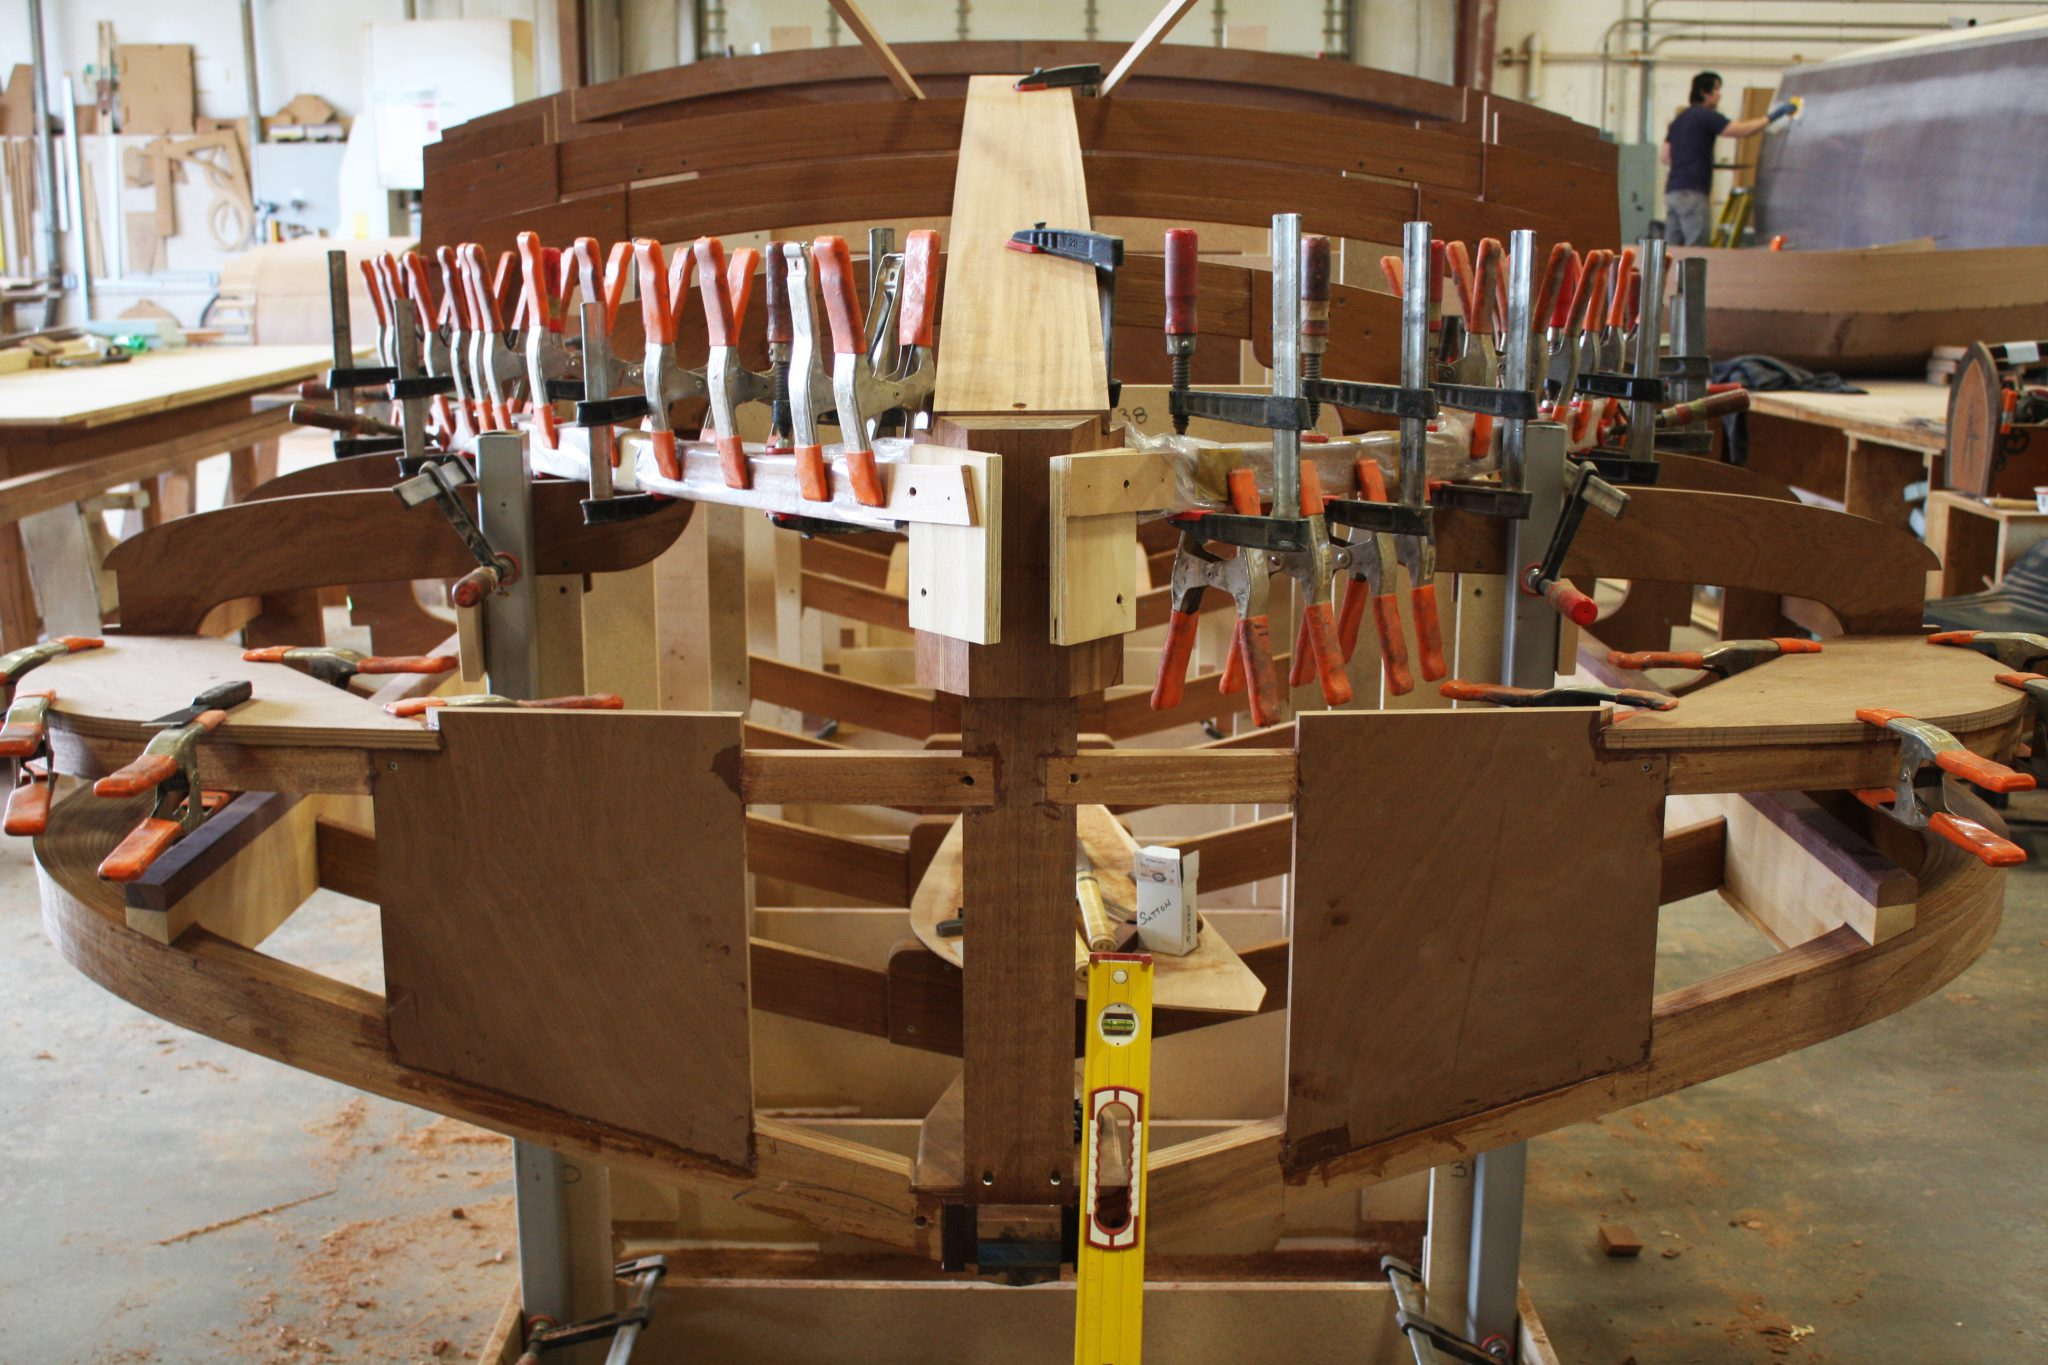 Clamping ribs into place to dry as new shape